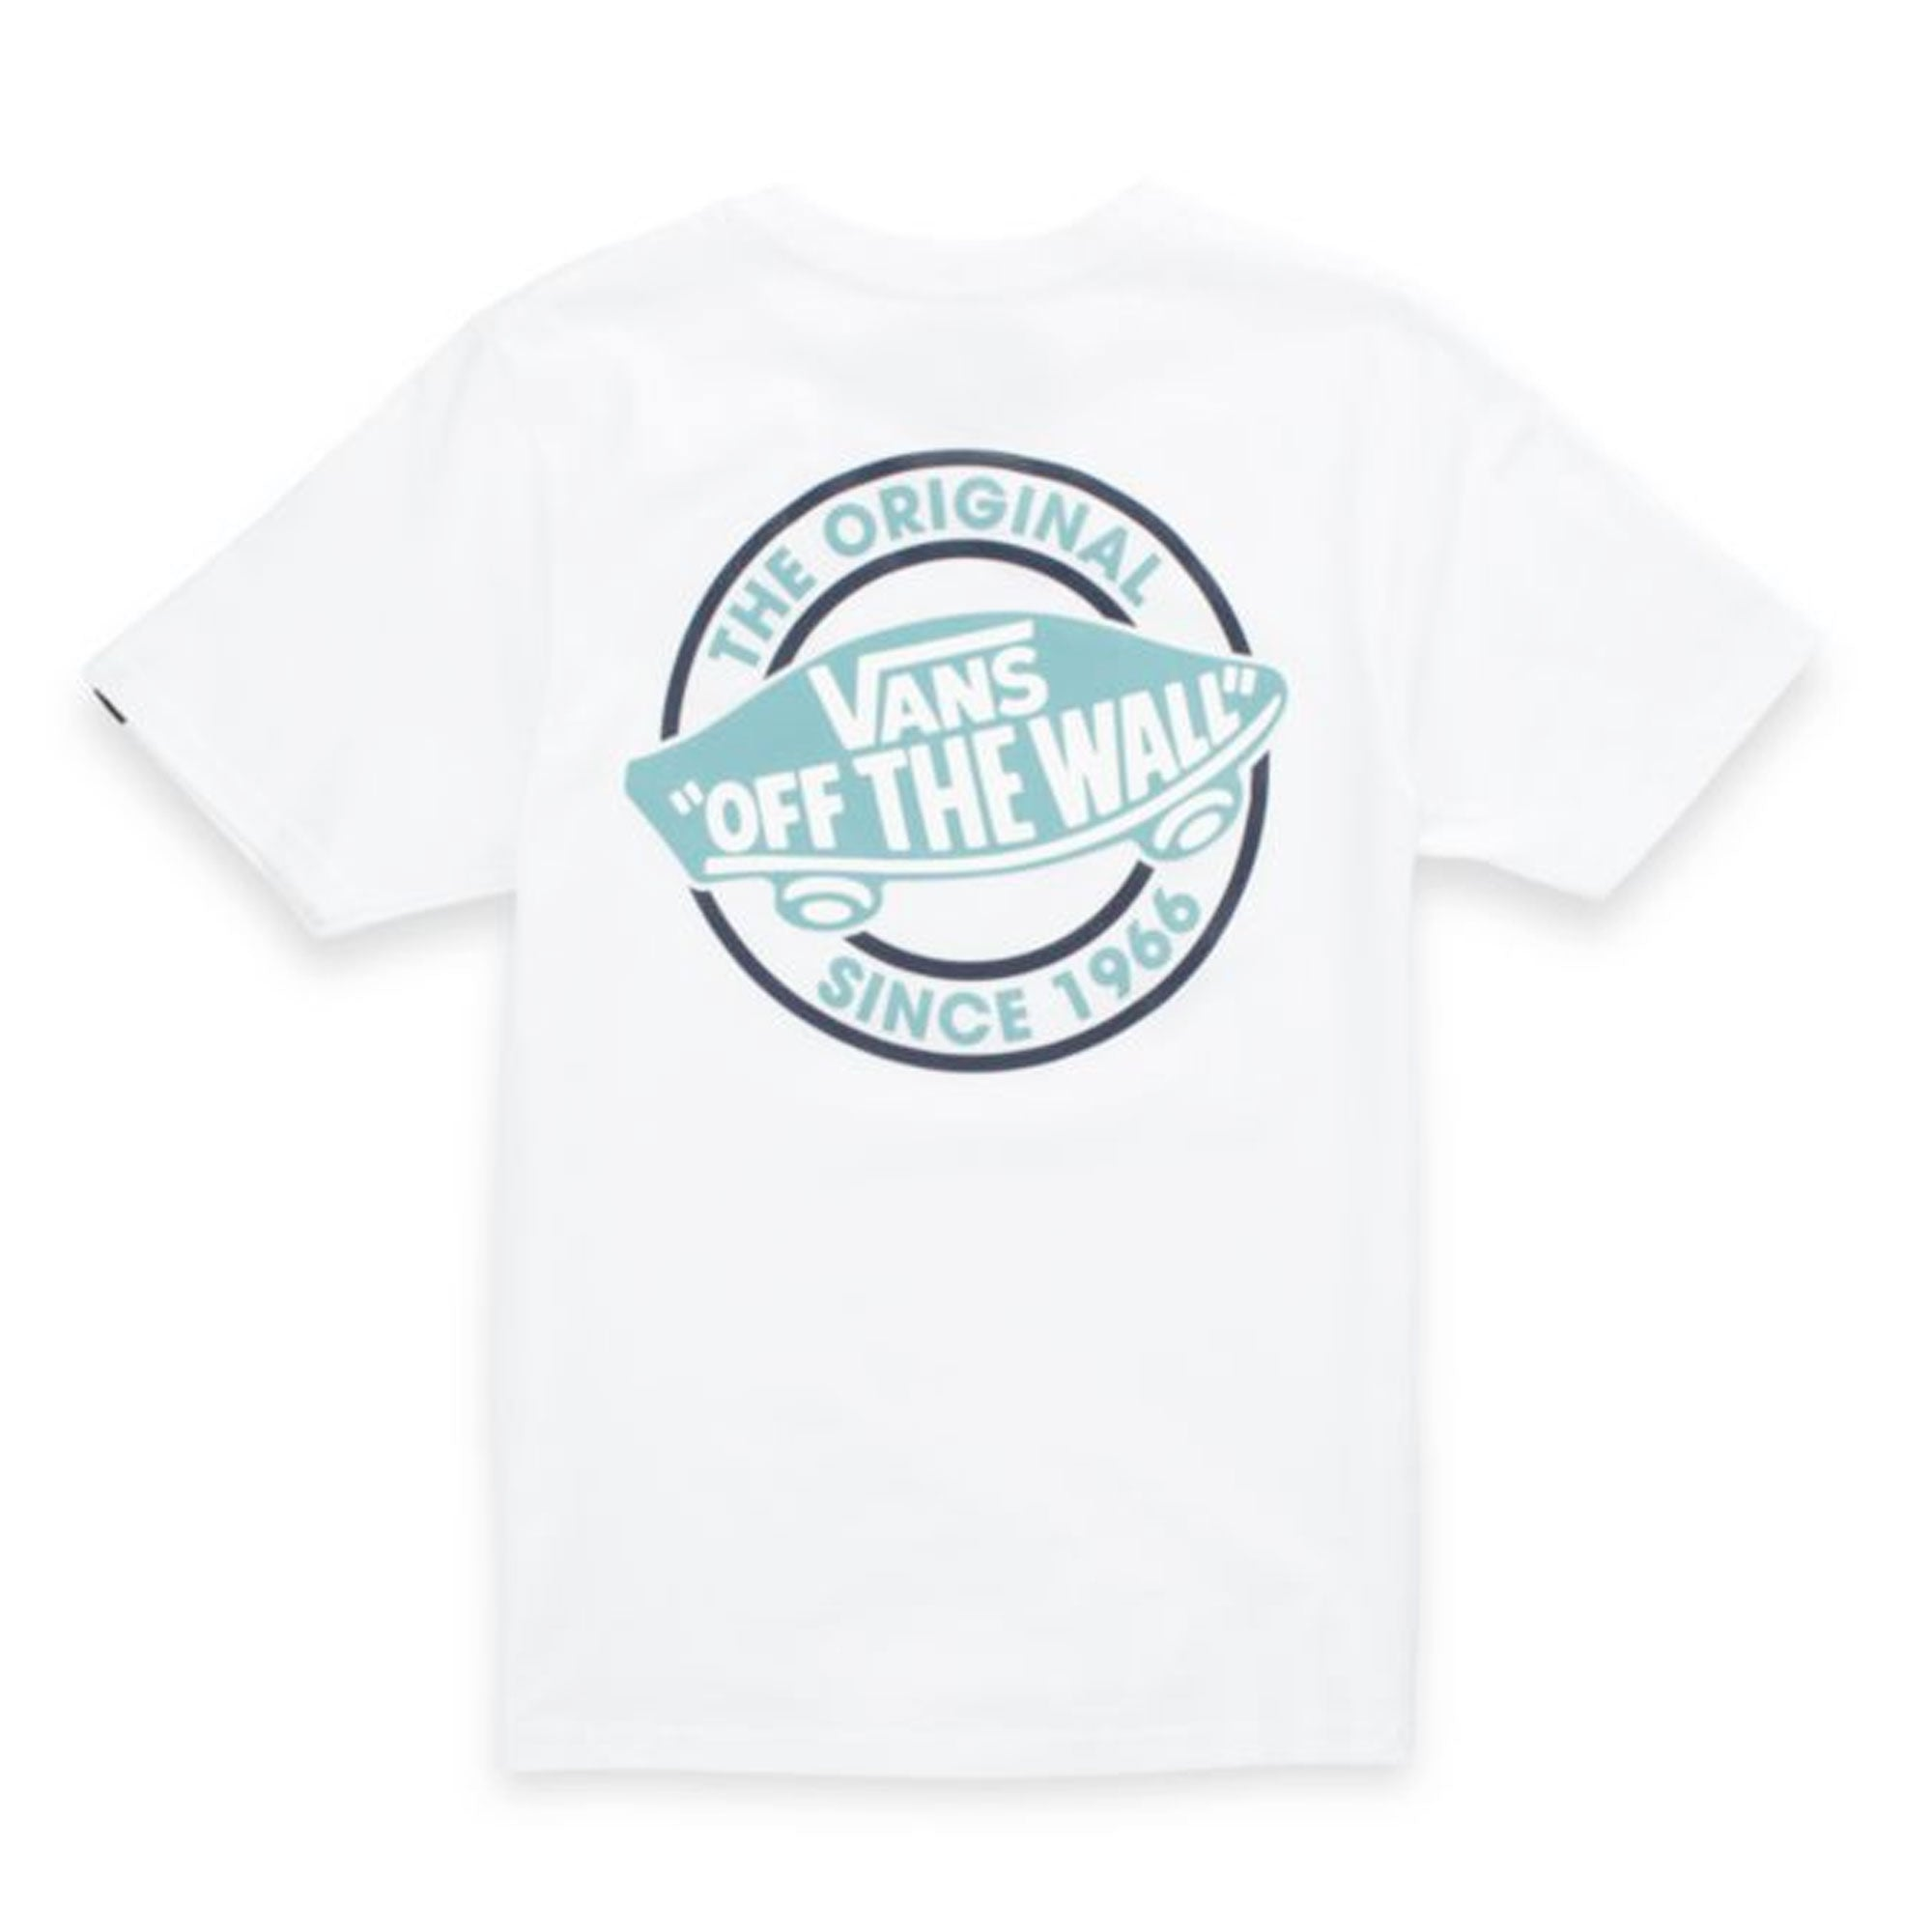 Vans Authentic OTW Youth S/S T-Shirt